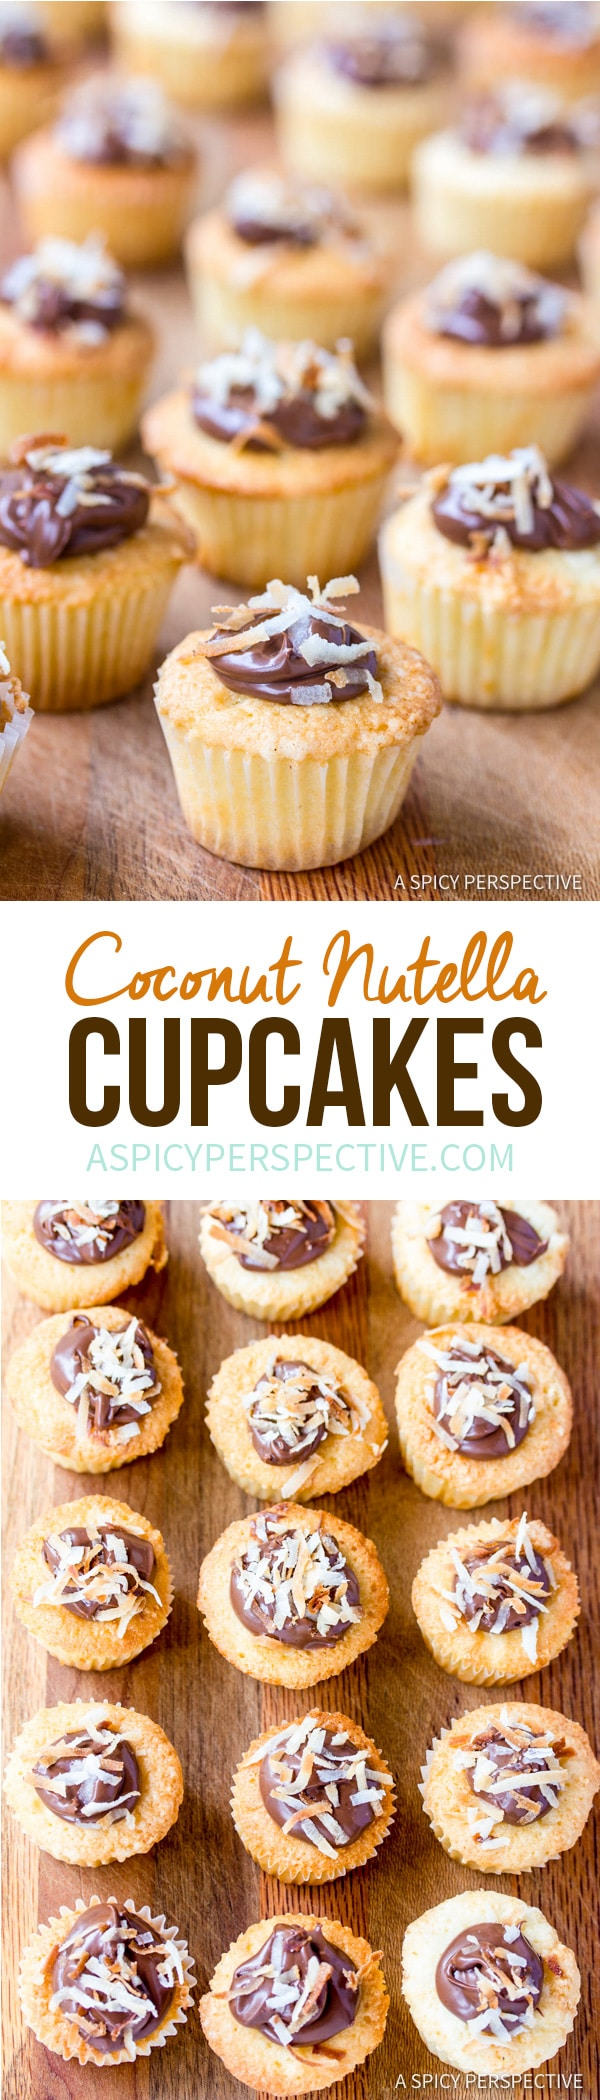 Mini Coconut Nutella Cupcakes Recipe | ASpicyPerspective.com